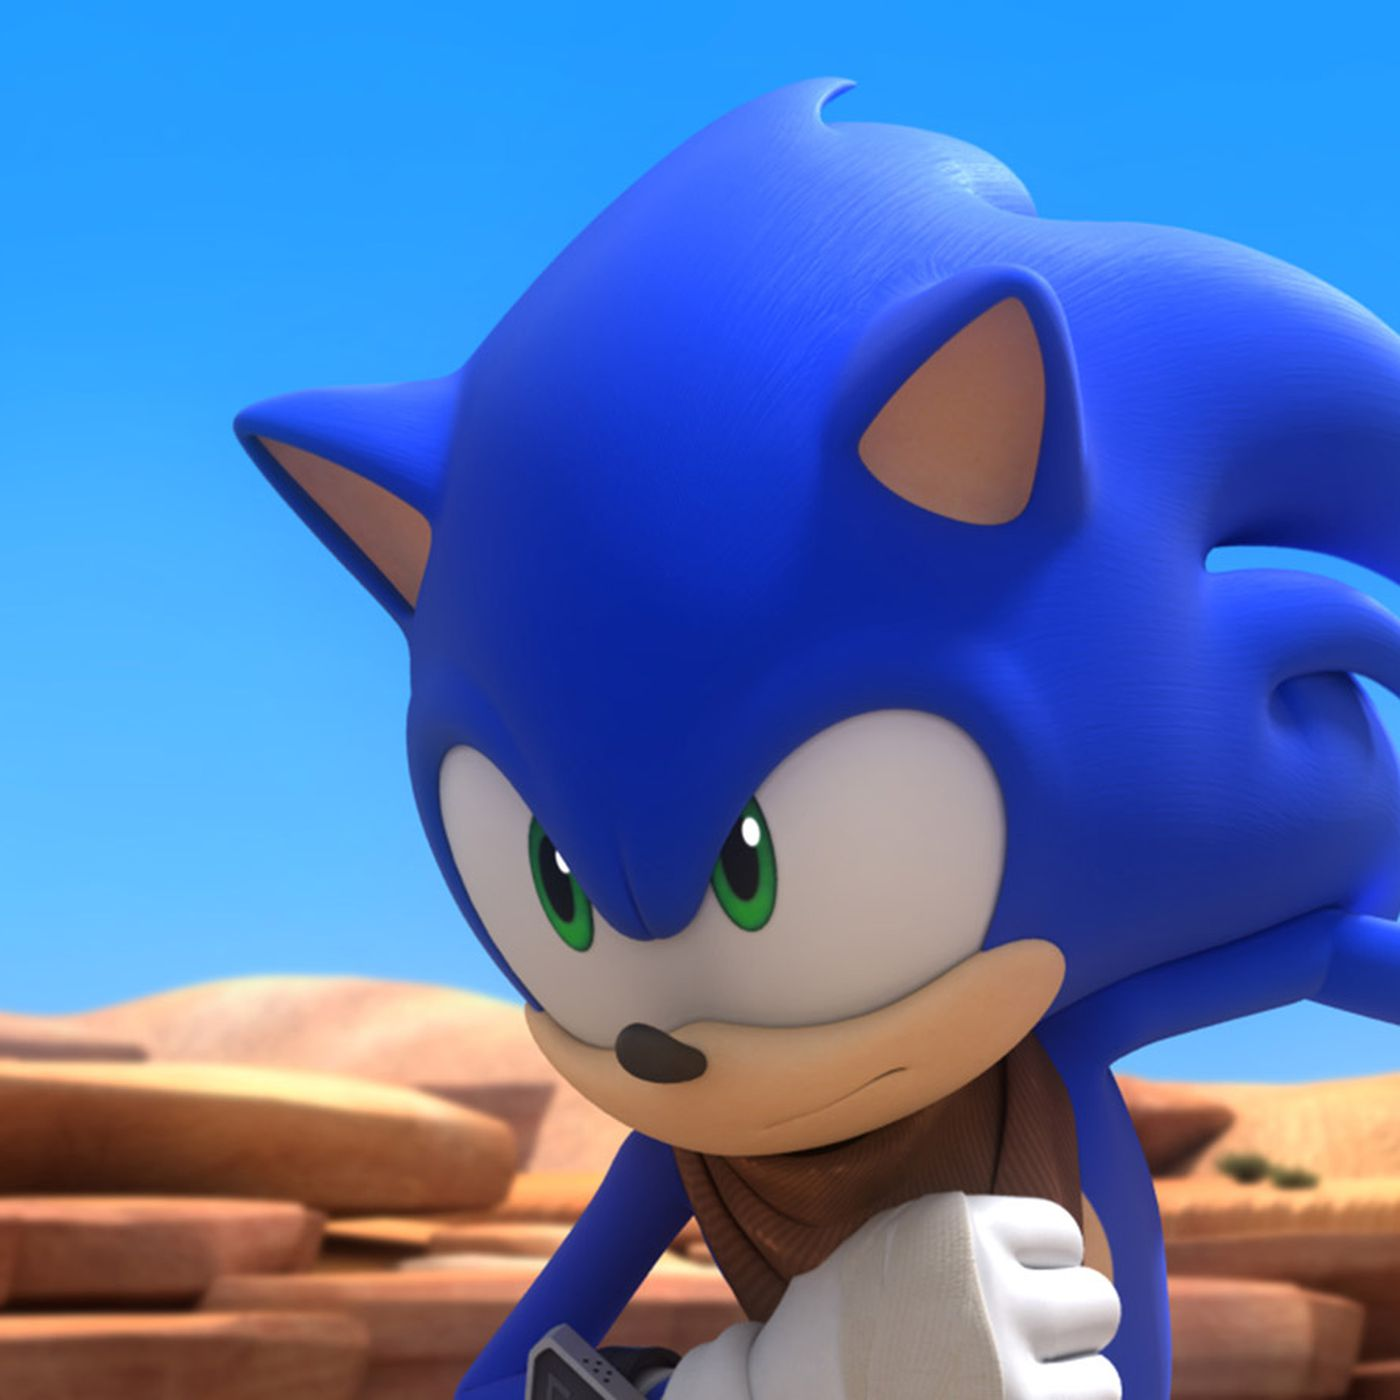 Sonic Boom Gets An Animated Tv Series Toy Line From Tomy In 2014 Polygon